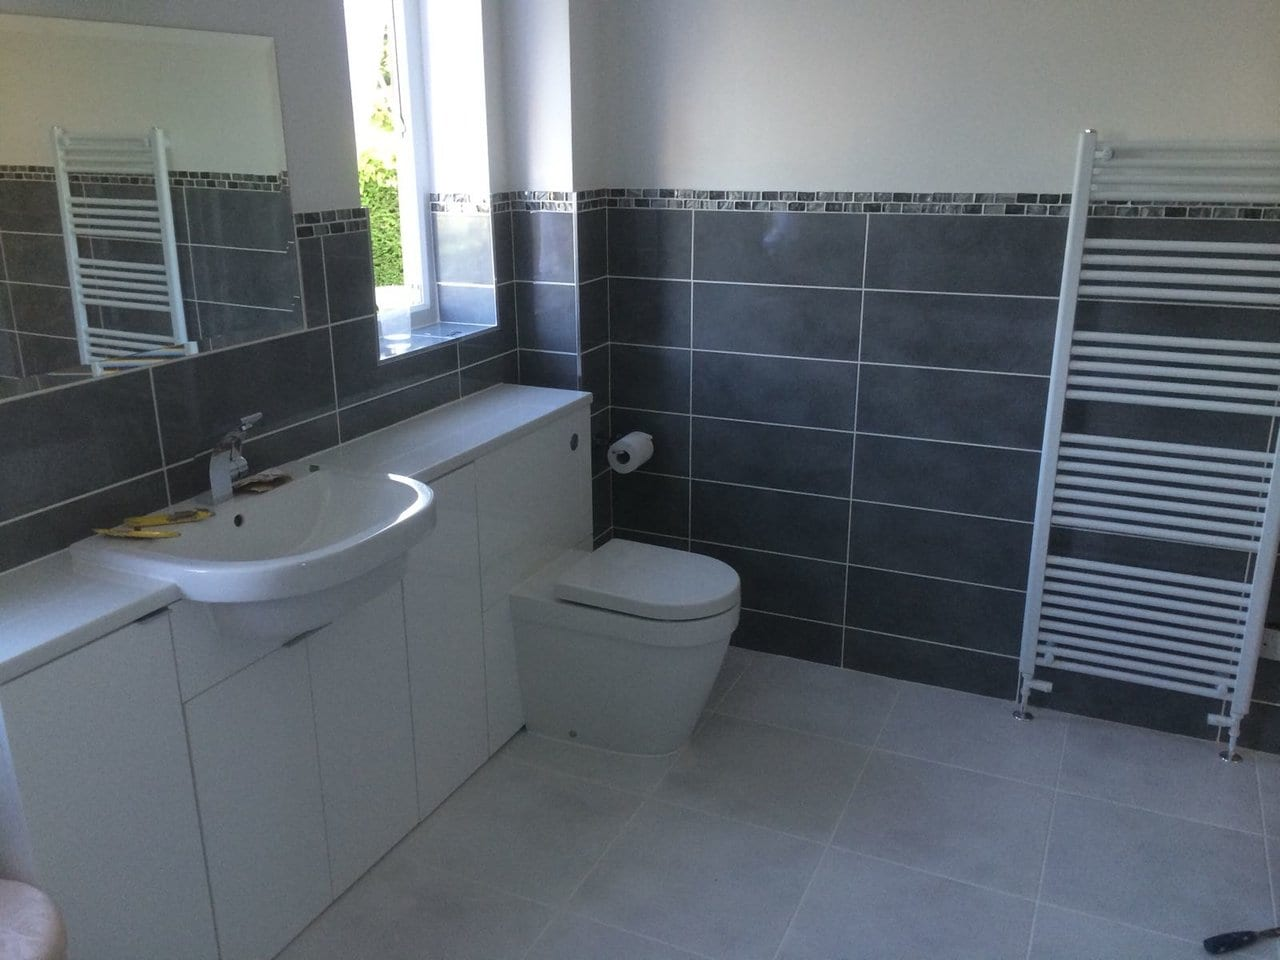 Bathroom fitted with Toilet and Towel Radiator in Leeds